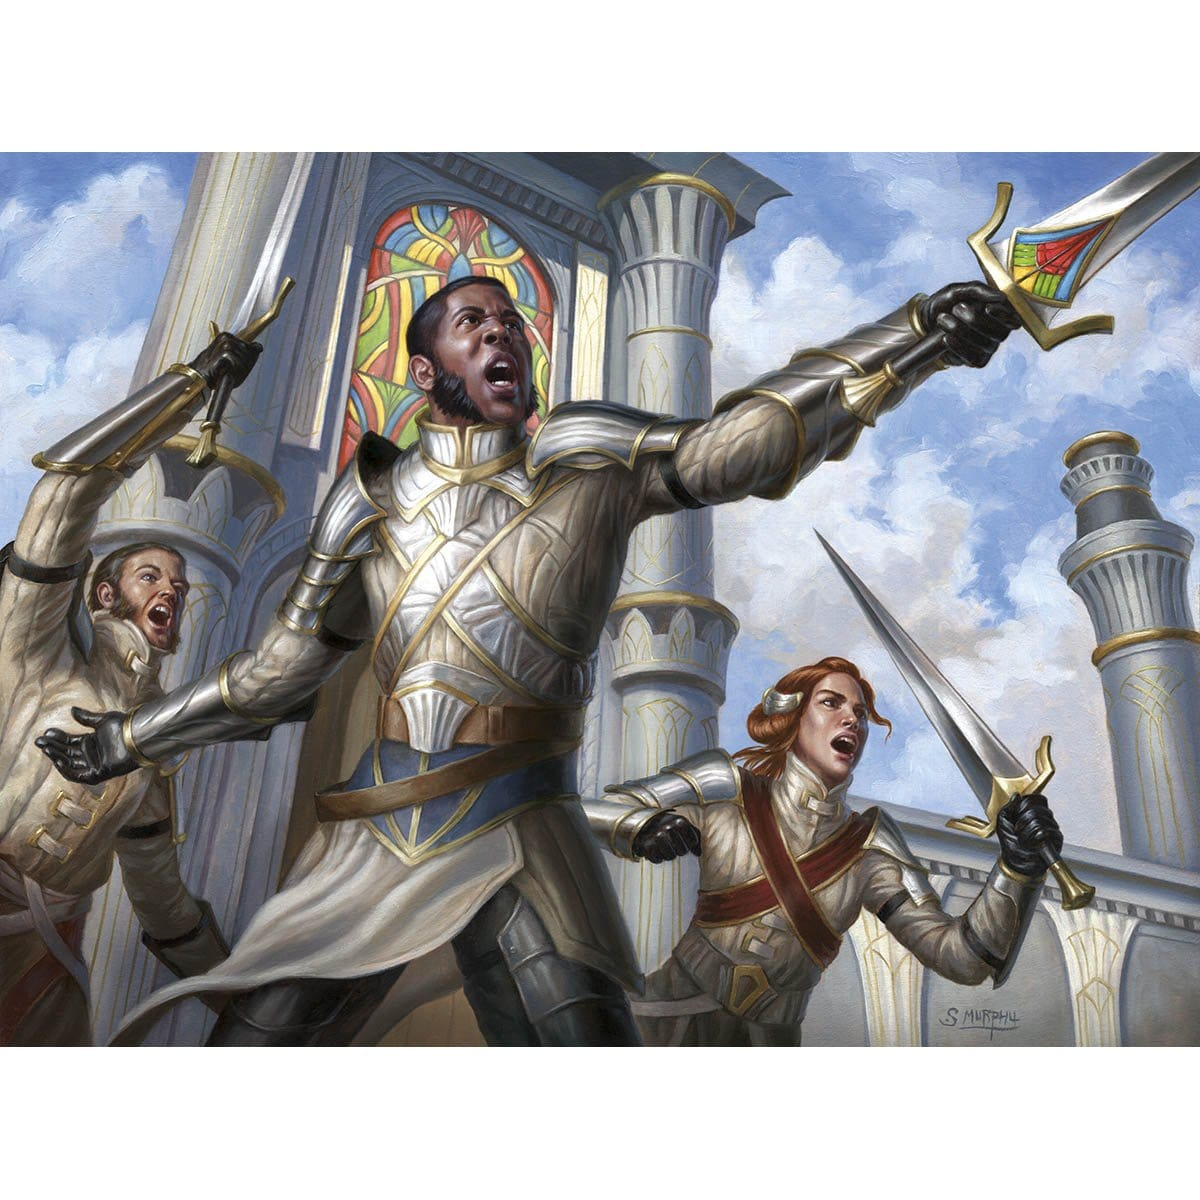 Sergeant-at-Arms Print - Print - Original Magic Art - Accessories for Magic the Gathering and other card games